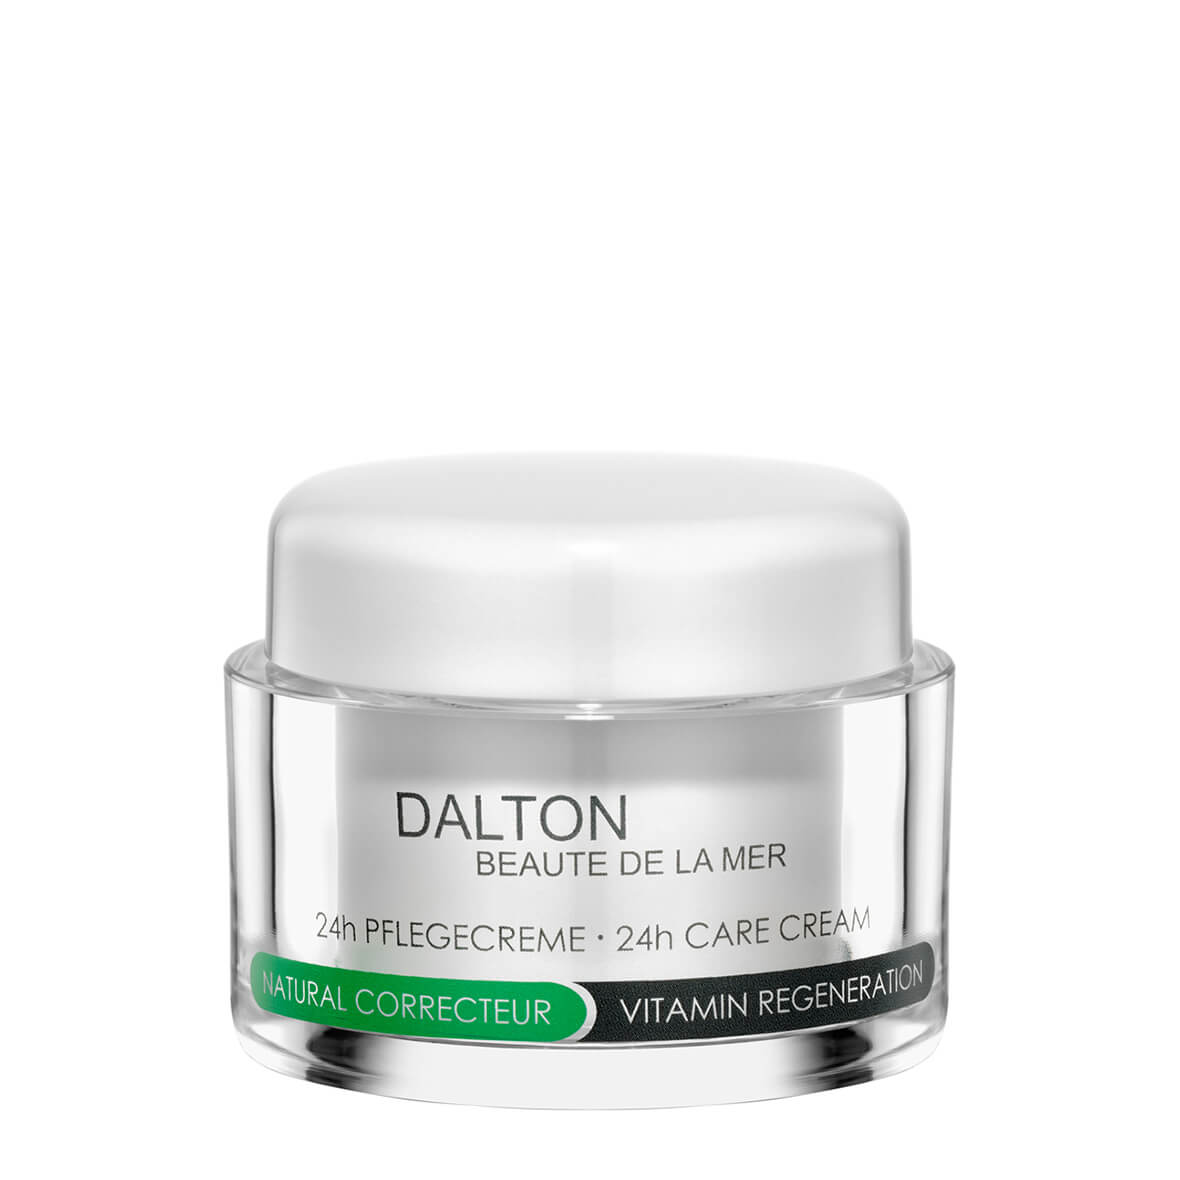 Natural Correcteur 24h Care Cream 50ml. - Era Cosmetics, Dalton Marine Cosmetics